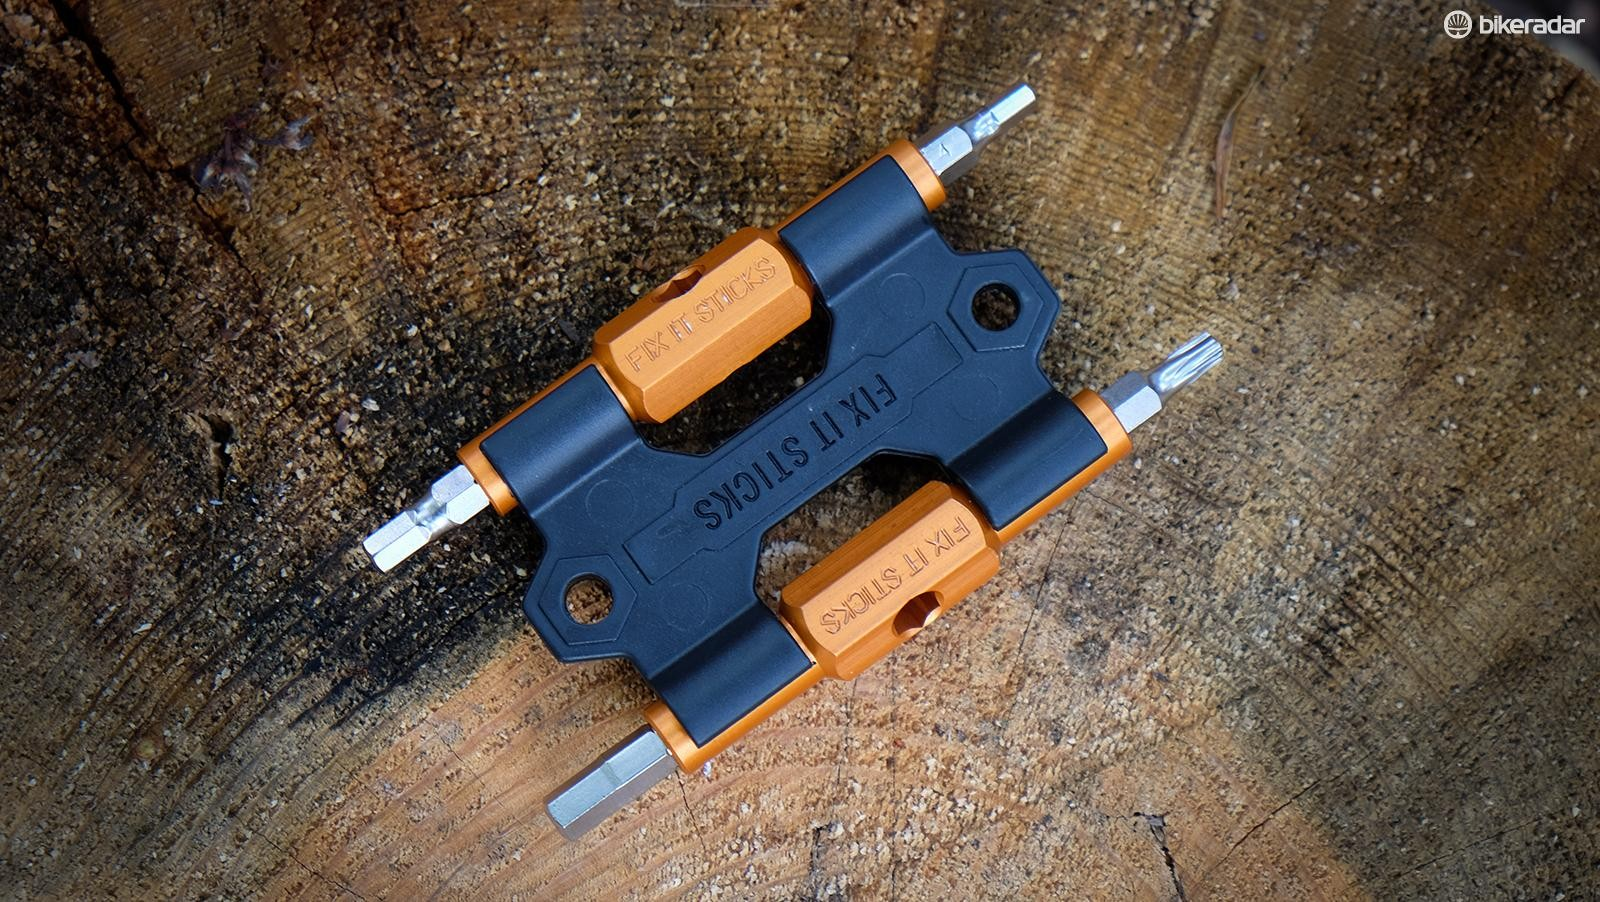 Fix It Sticks is making its multi-tools easier to carry by introducing a bracket that mounts to water bottle bosses